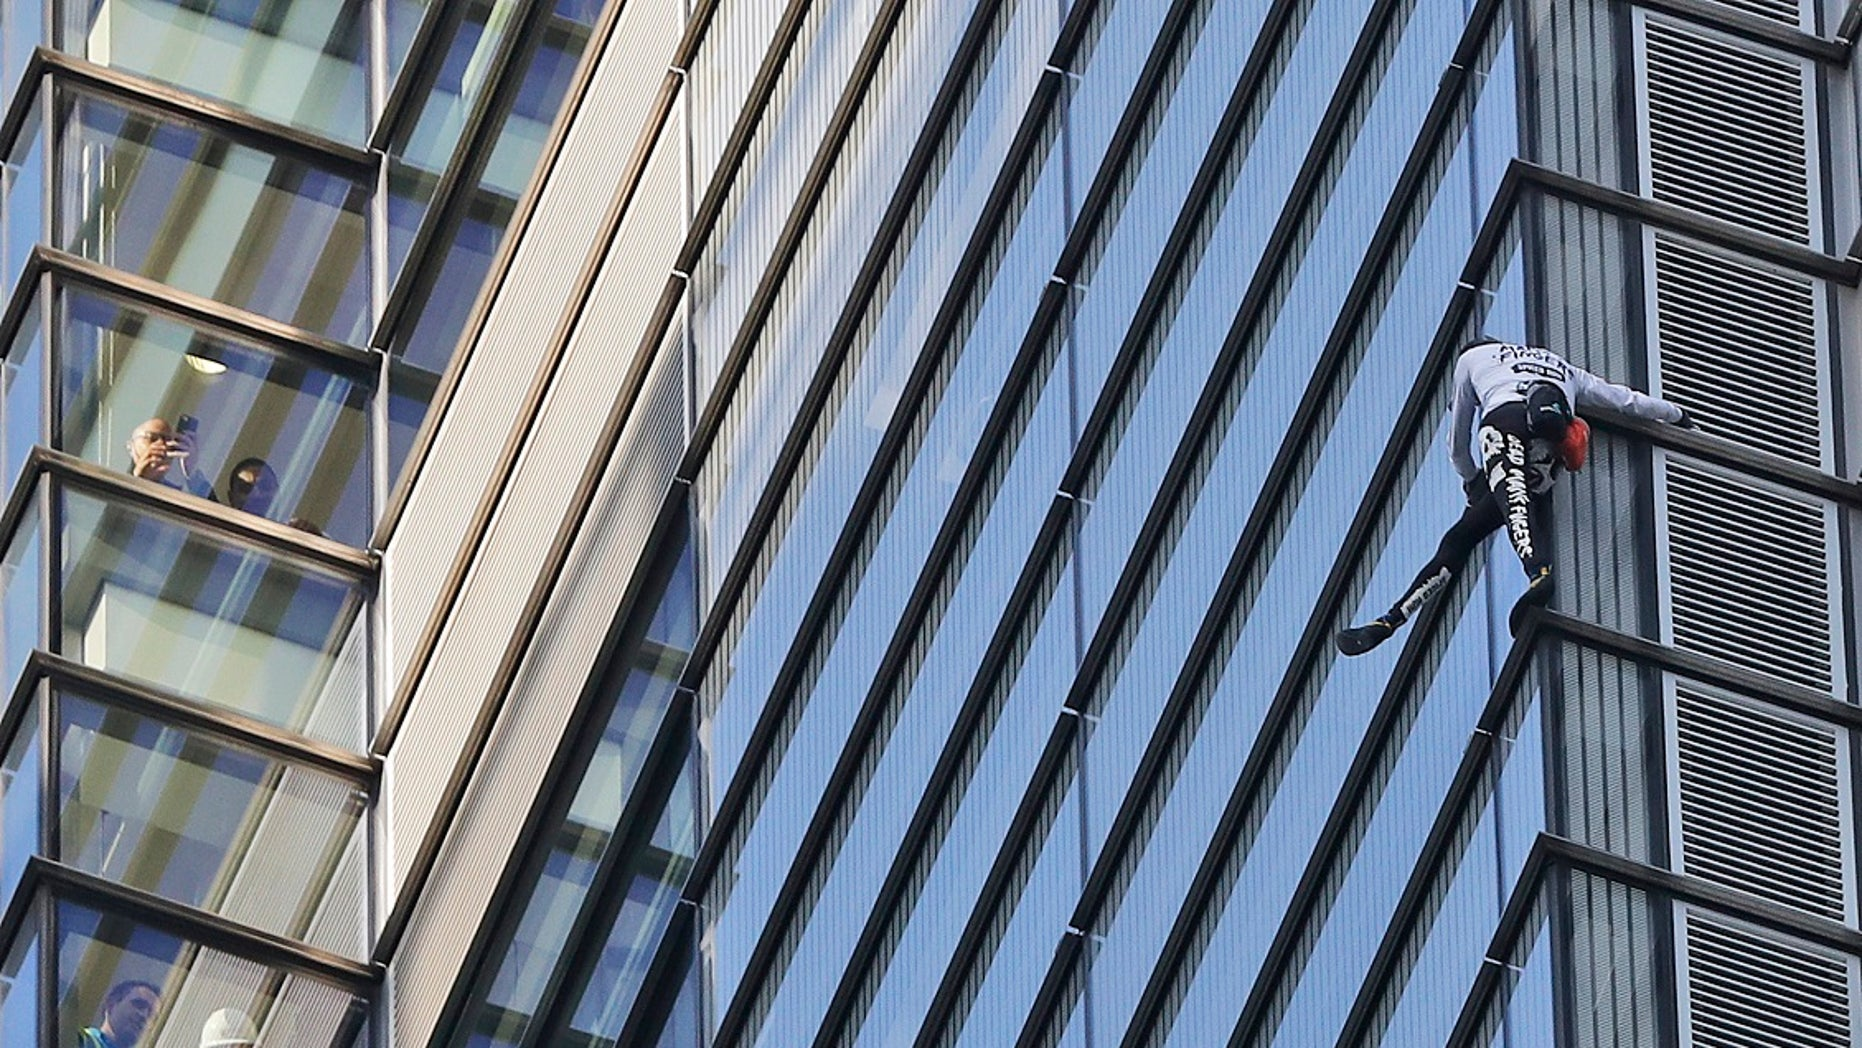 People watch from inside the building as urban climber dubbed the French Spider-Man, Alain Robert scales the outside of Heron Tower building in London